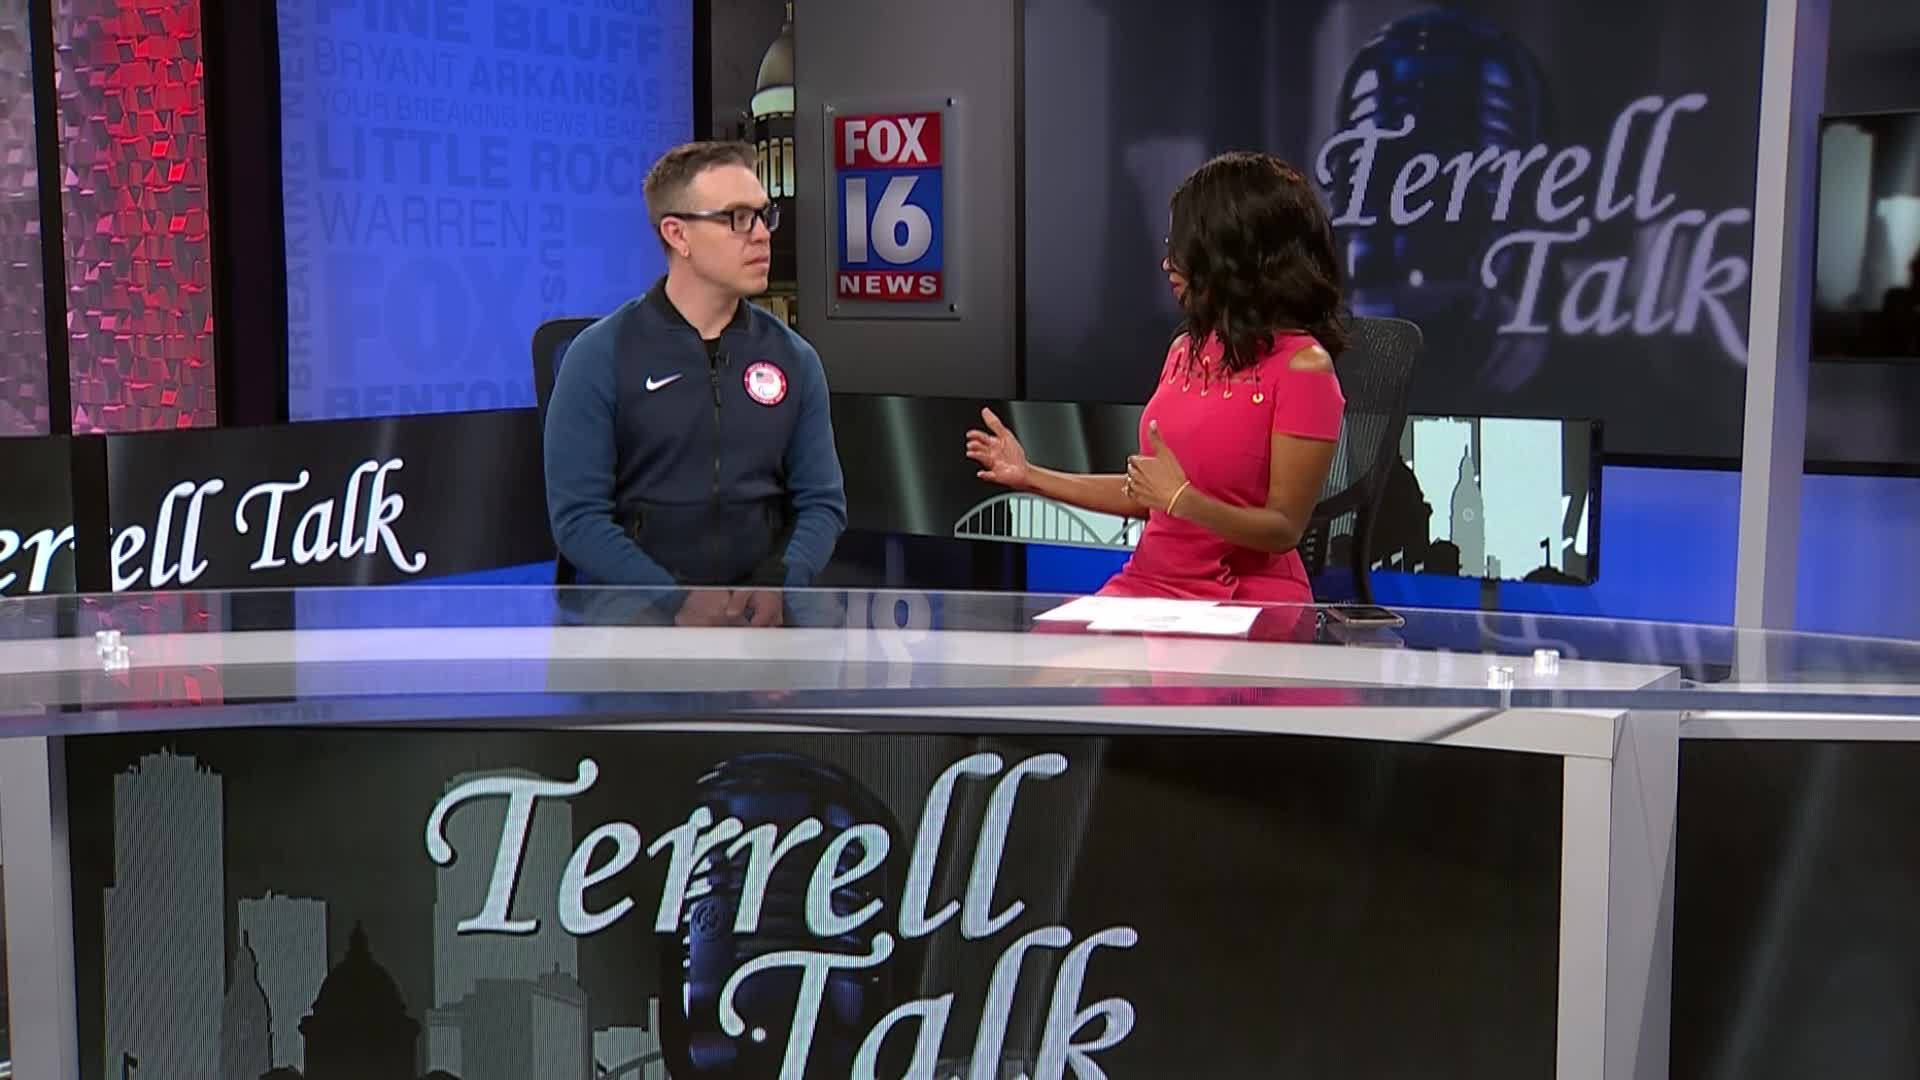 Terrell_Talk_with_Jason_Macon__Part_3_8_20190411204302